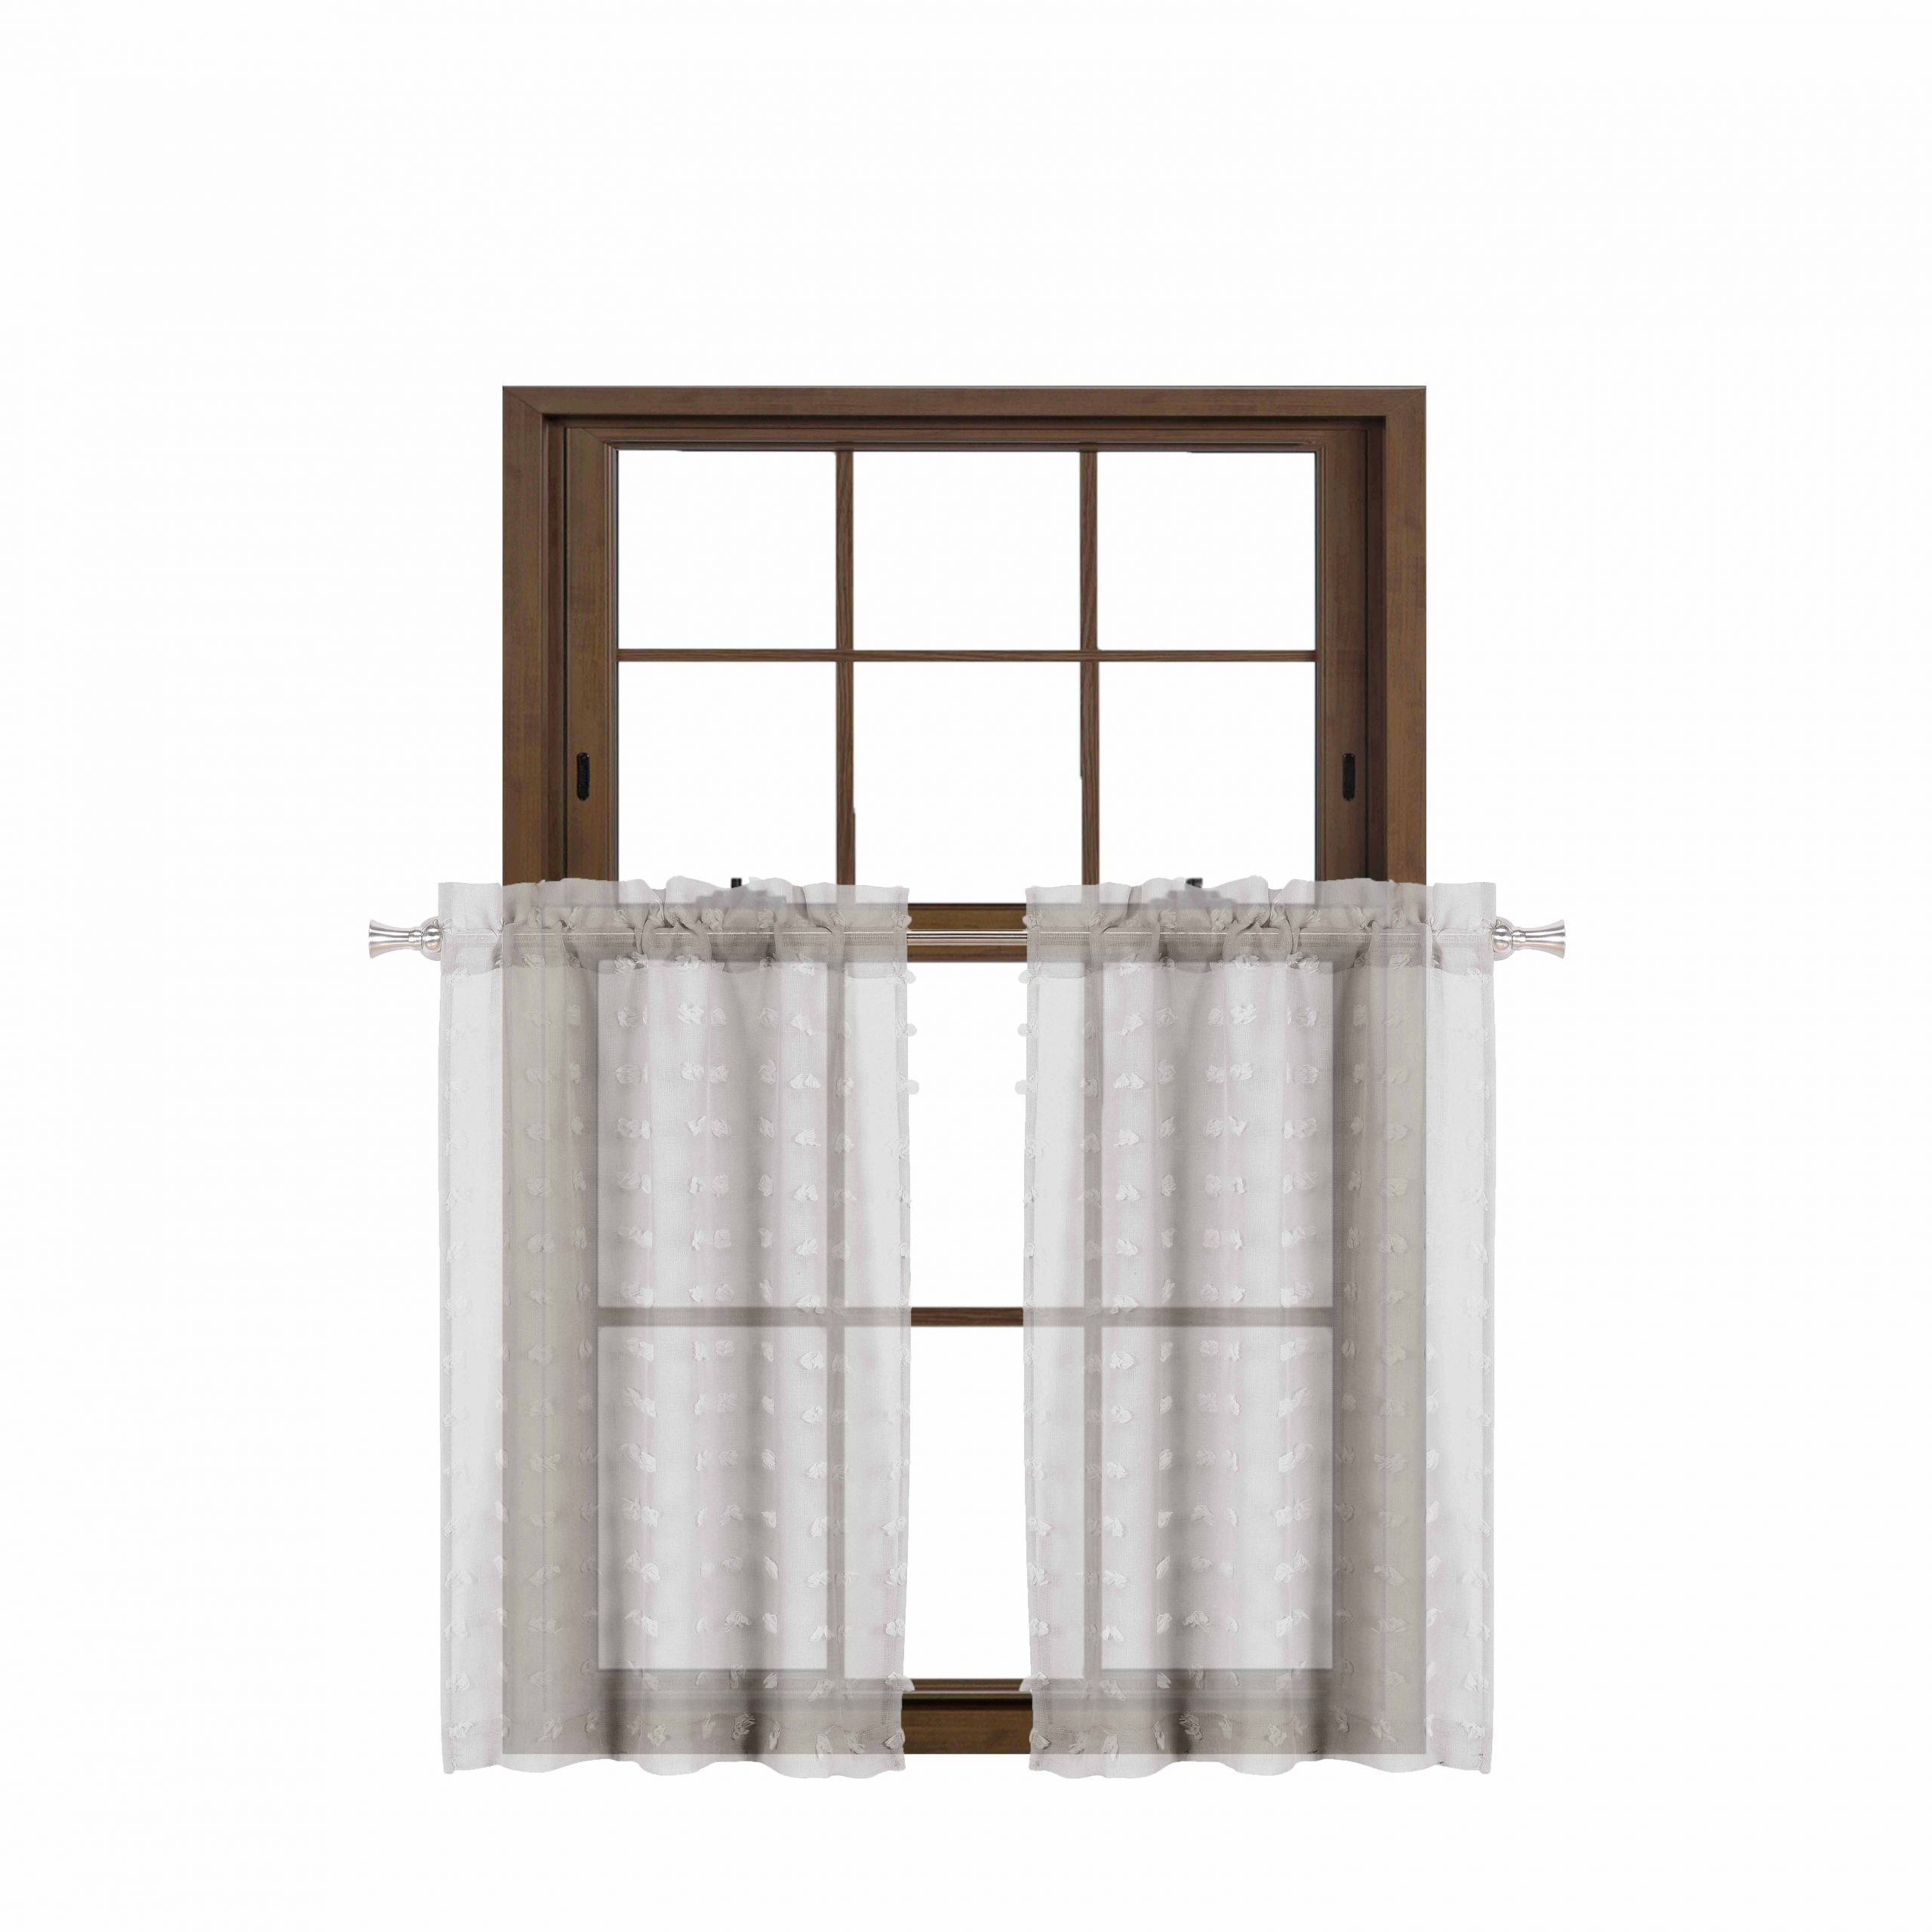 Sheer Lace Elongated Kitchen Curtain Tier Pairs Within Recent Sheer 2 Piece Silver Café/tier Curtain Set: 3 D Soft Tufts (View 19 of 20)